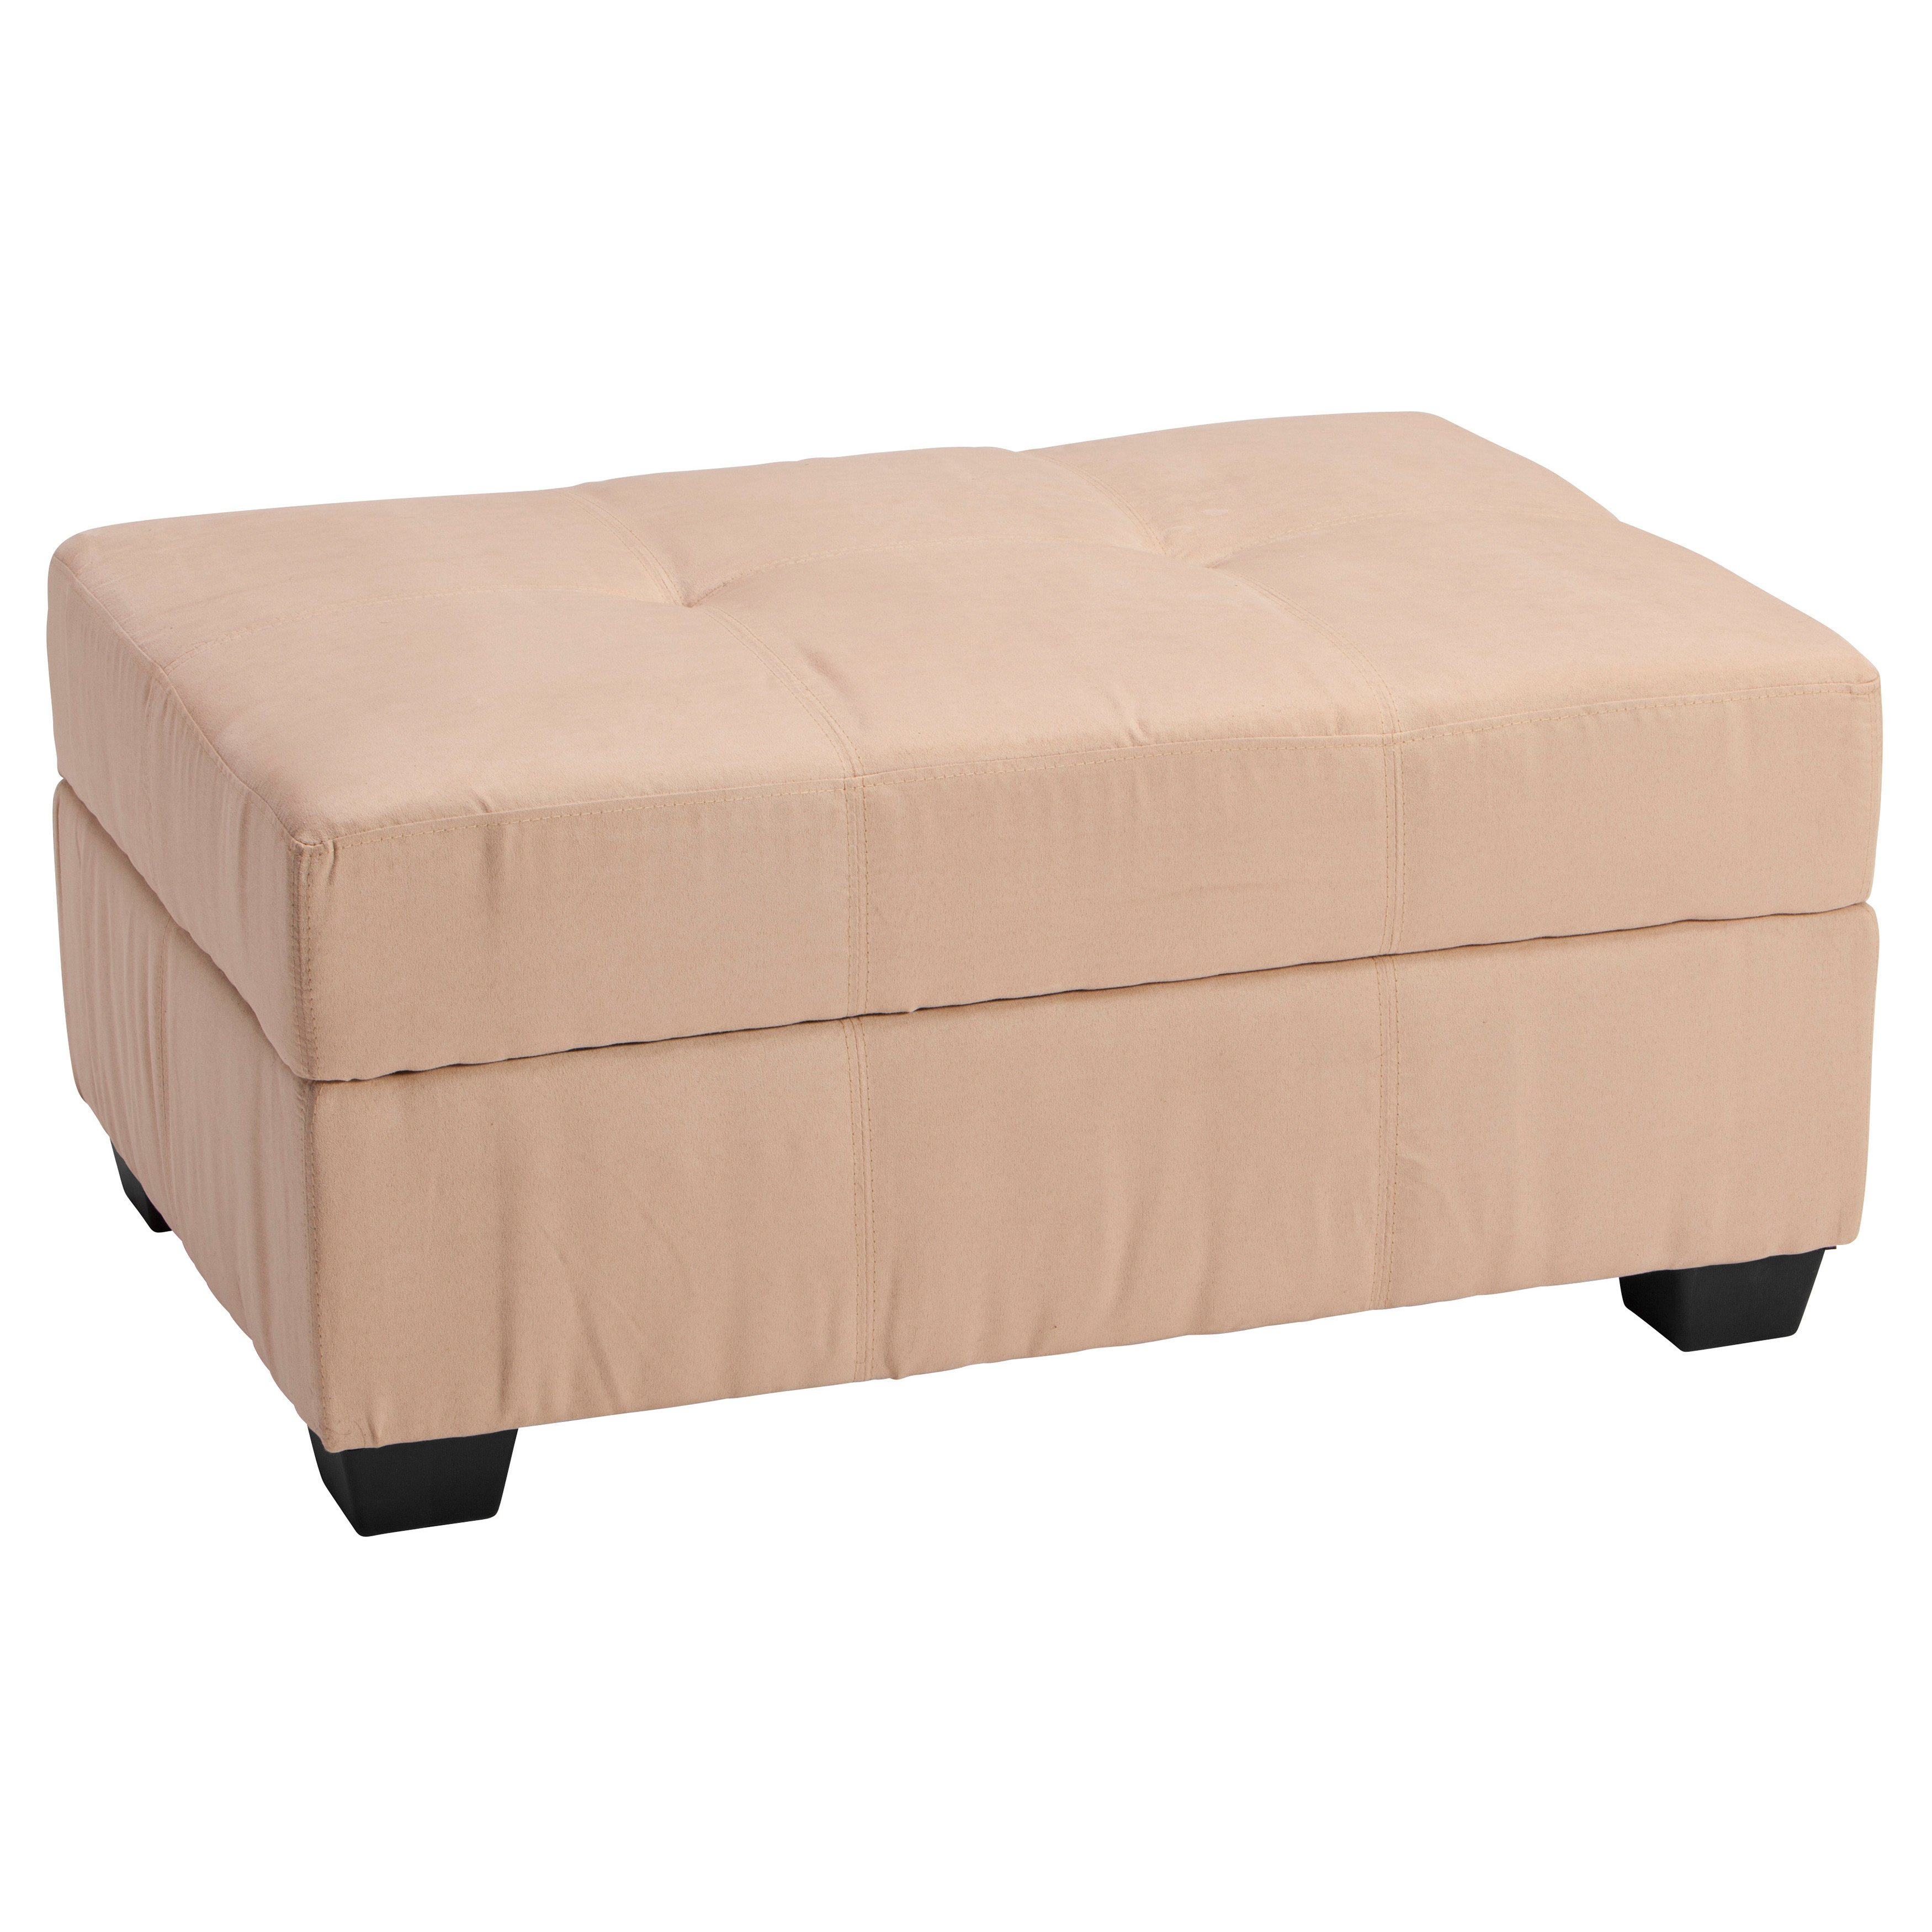 Swell Malad Hinged Storage Ottoman Bench Alphanode Cool Chair Designs And Ideas Alphanodeonline